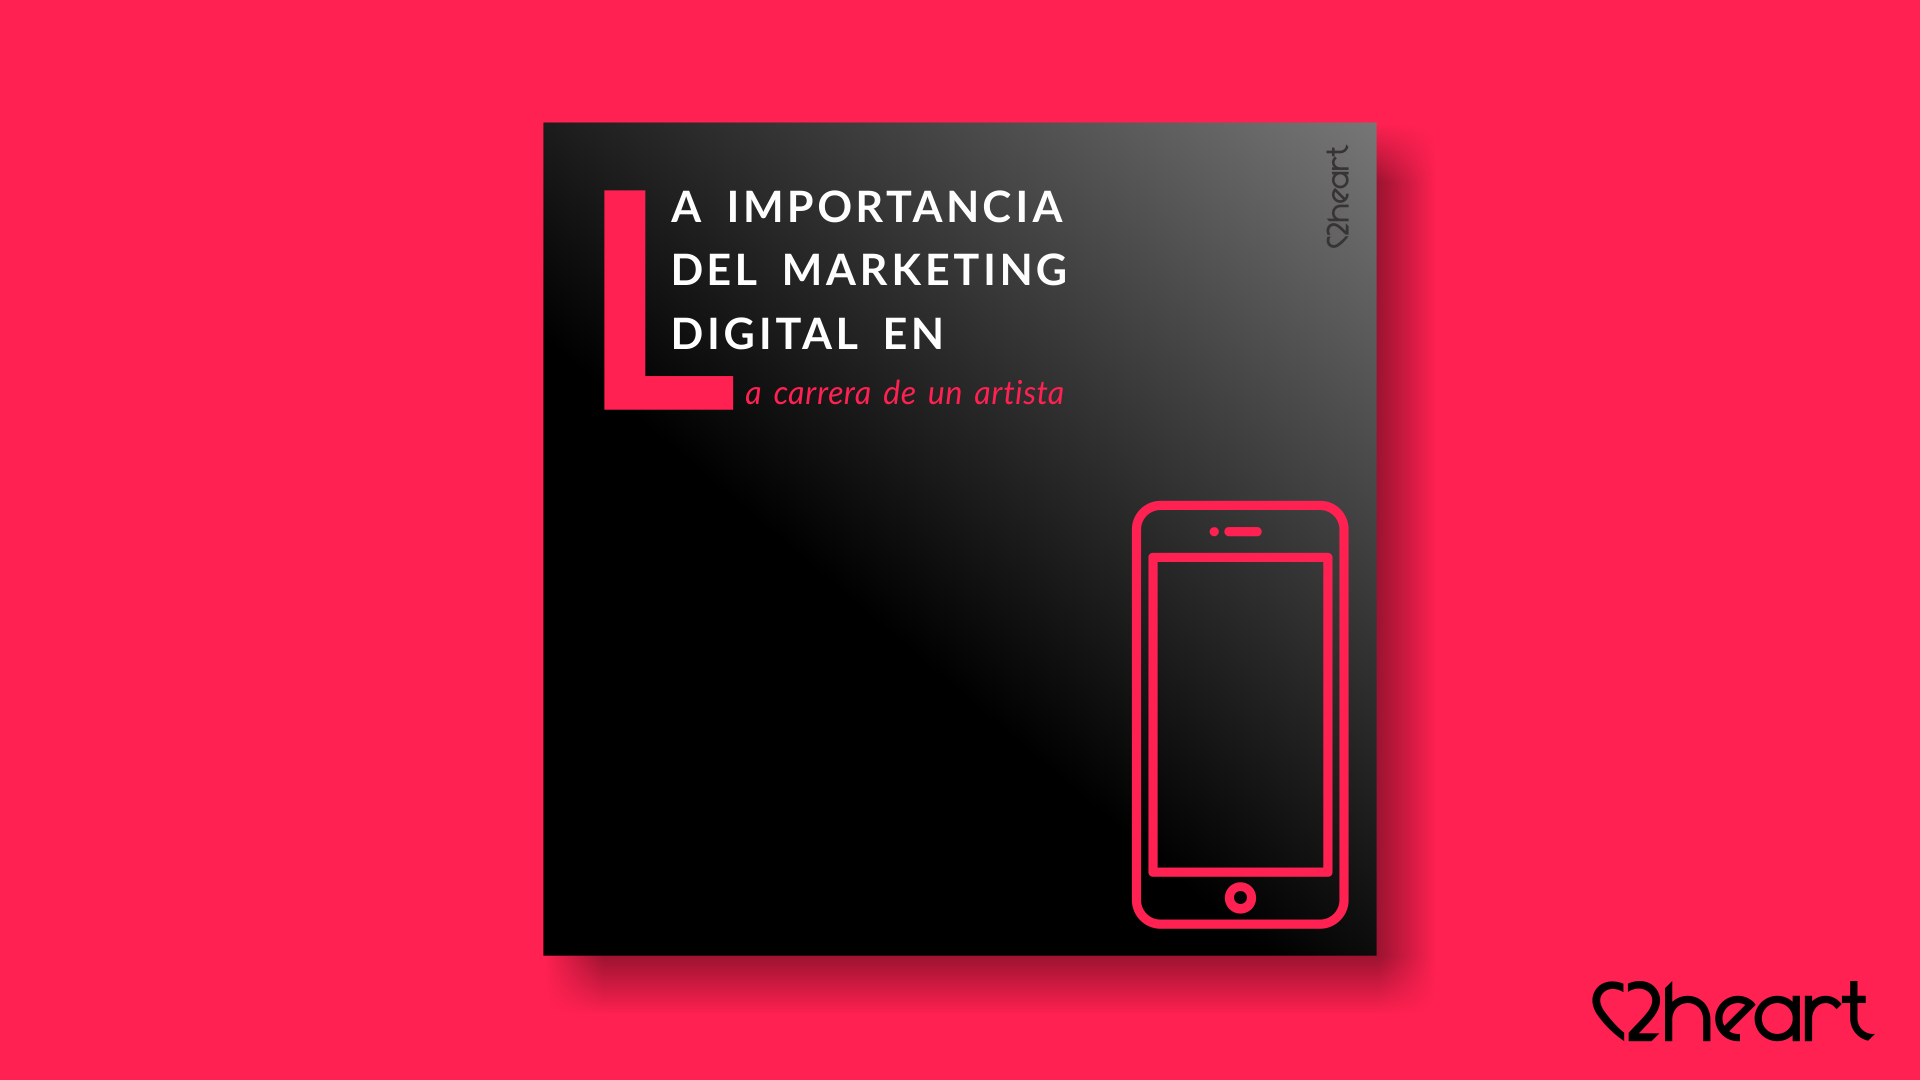 Importancia Marketing Digital Carrera Artista 2heart